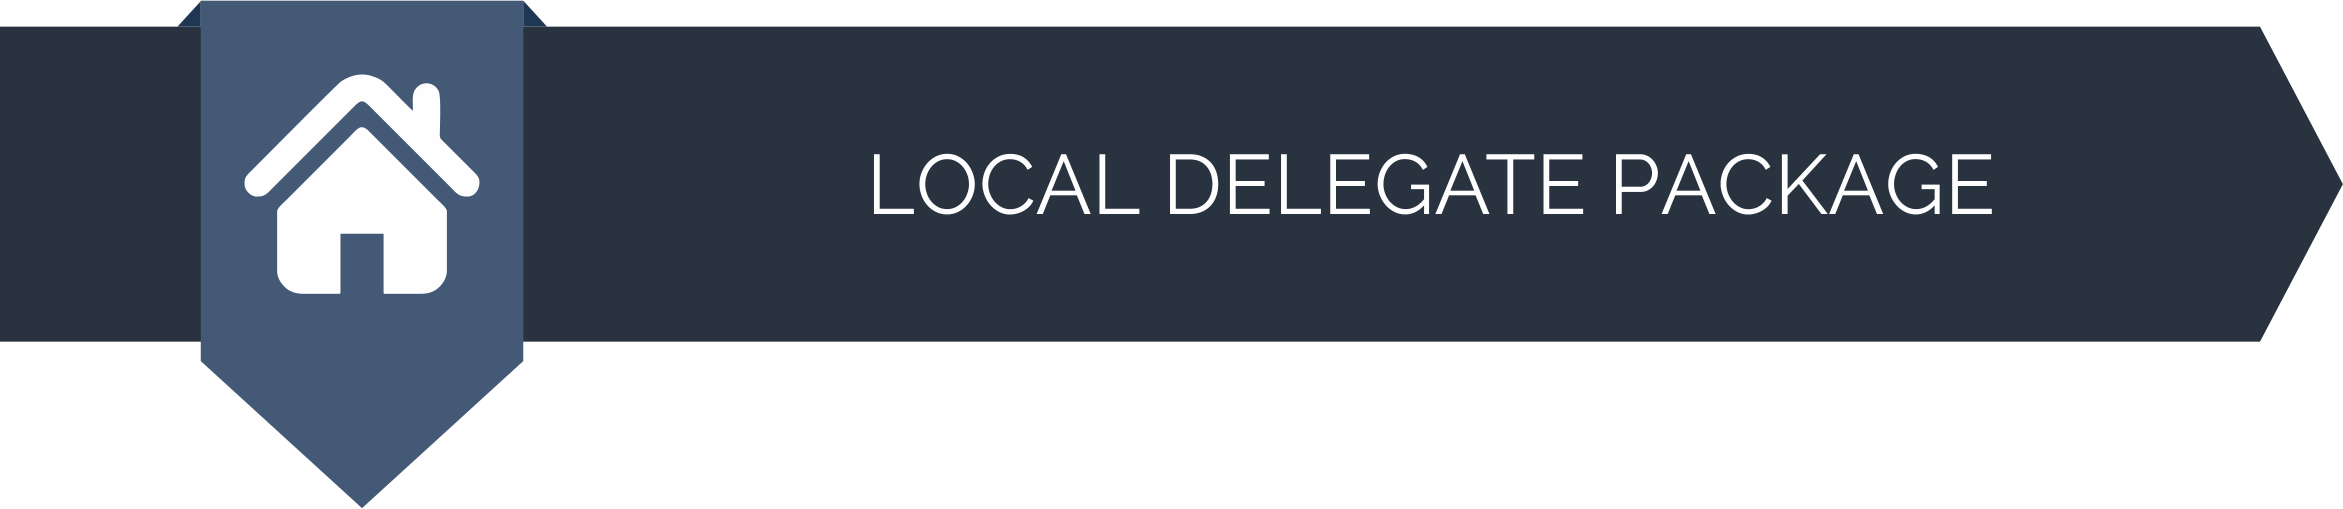 Plfc Local Delegate Package Bg